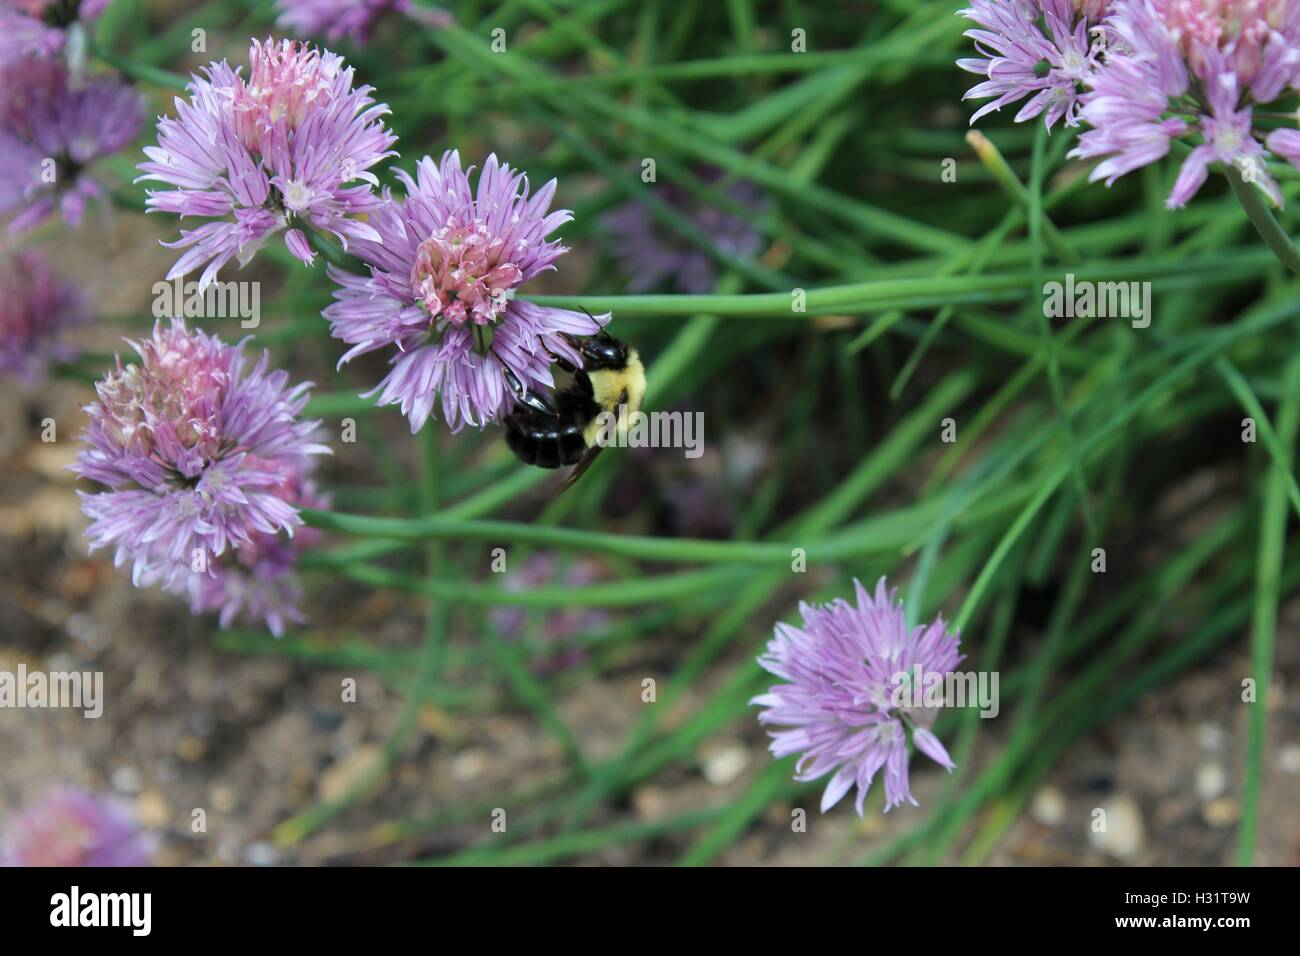 Bumble Bee on a Chive Blossom - Stock Image